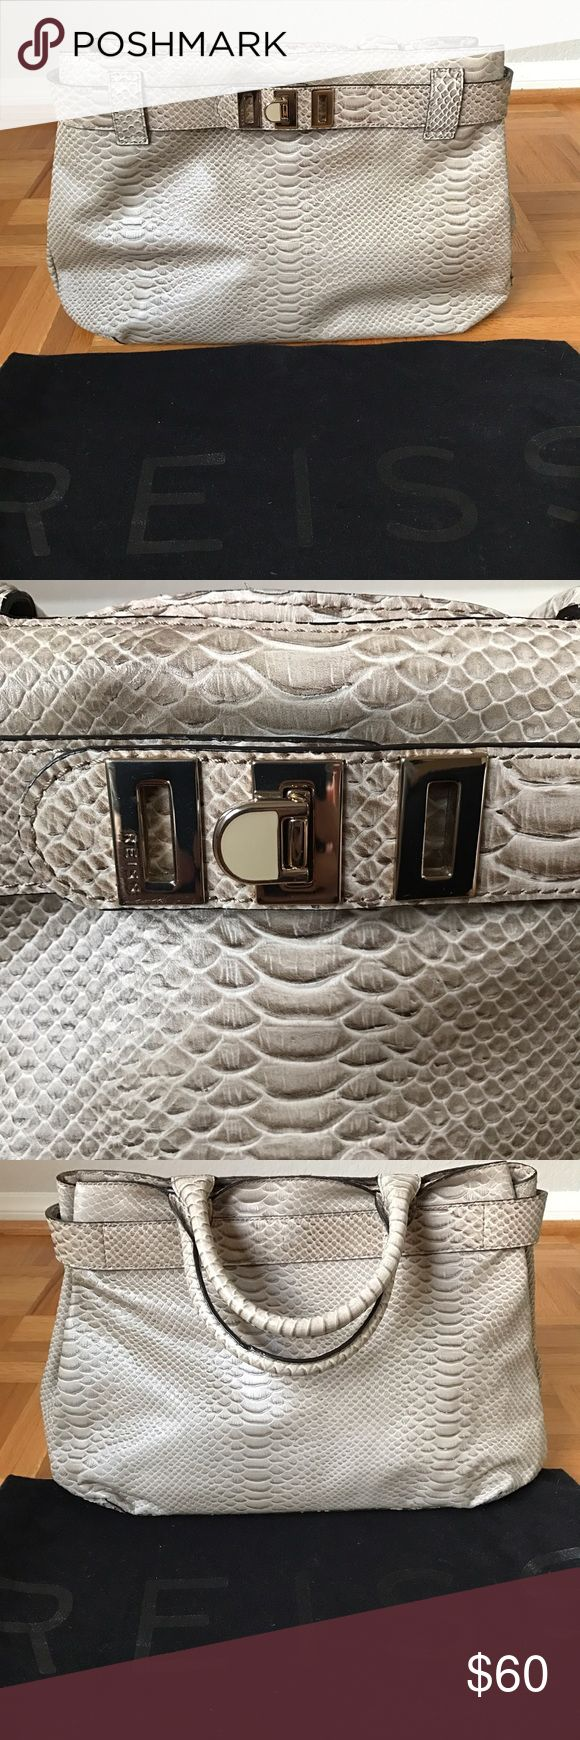 Bag Reiss snake print bag, greige color, in excellent condition. Two large compartments. Reiss Bags Totes